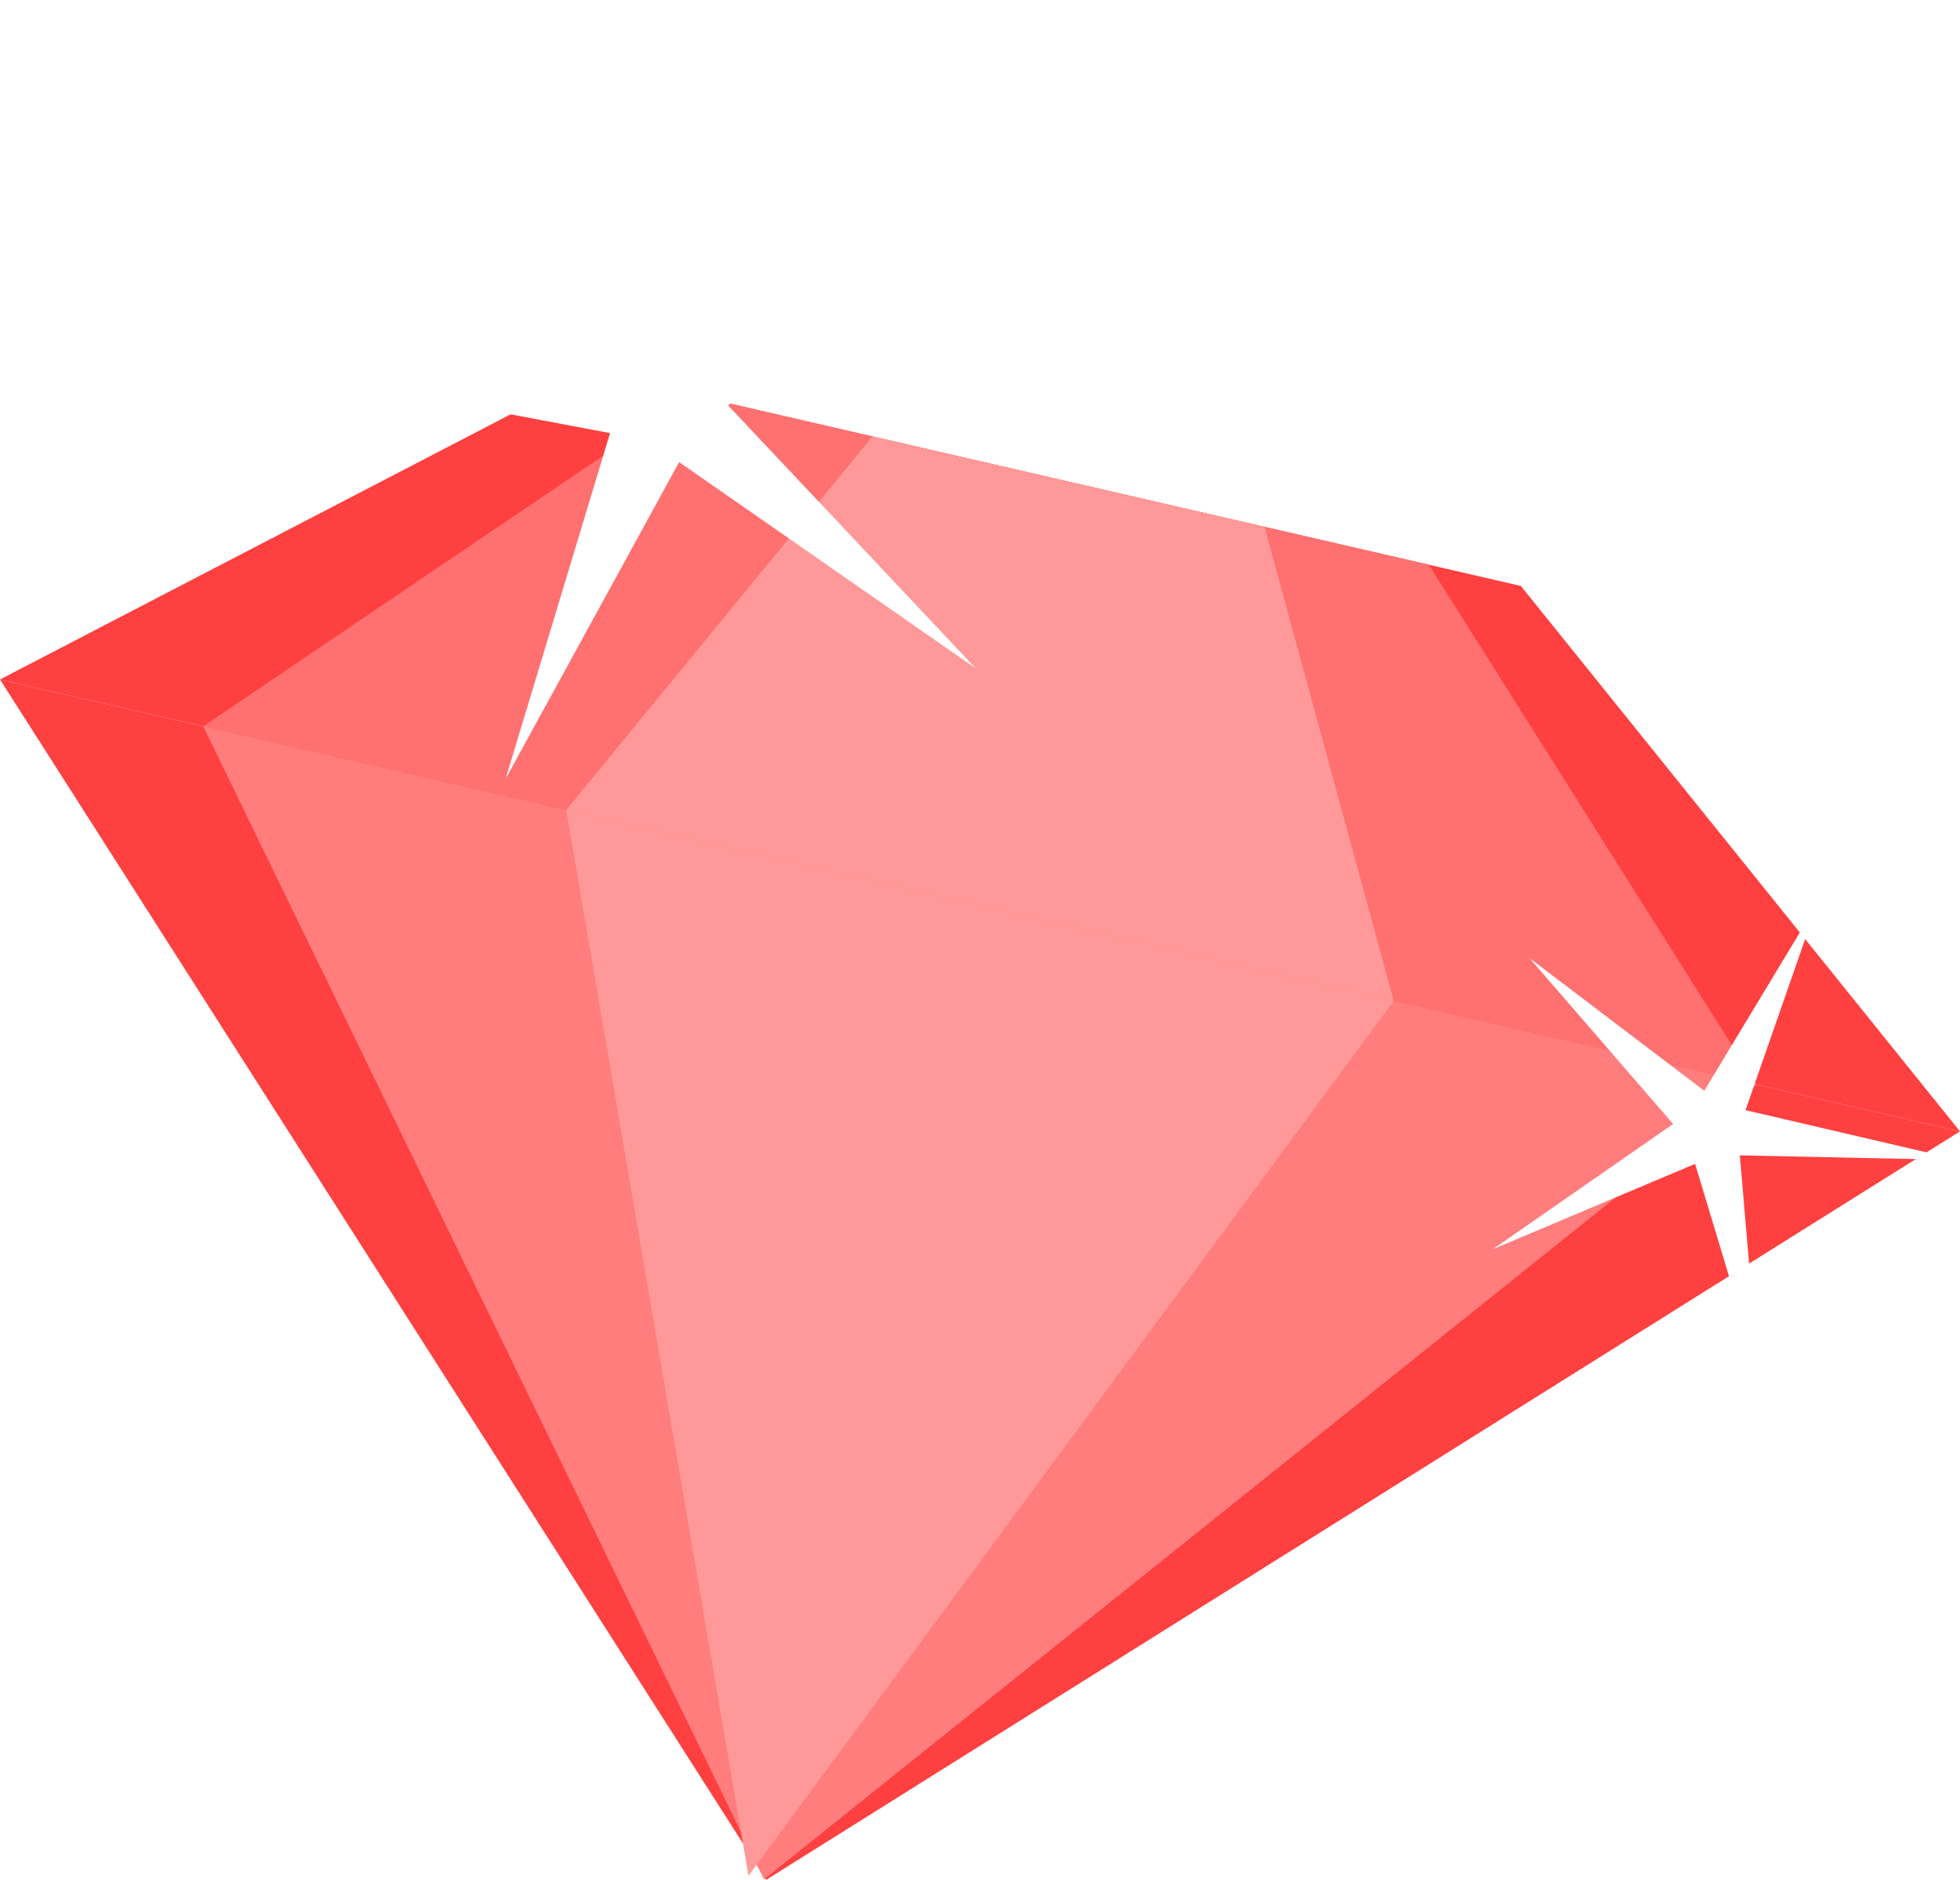 Big image png. Diamonds clipart ruby